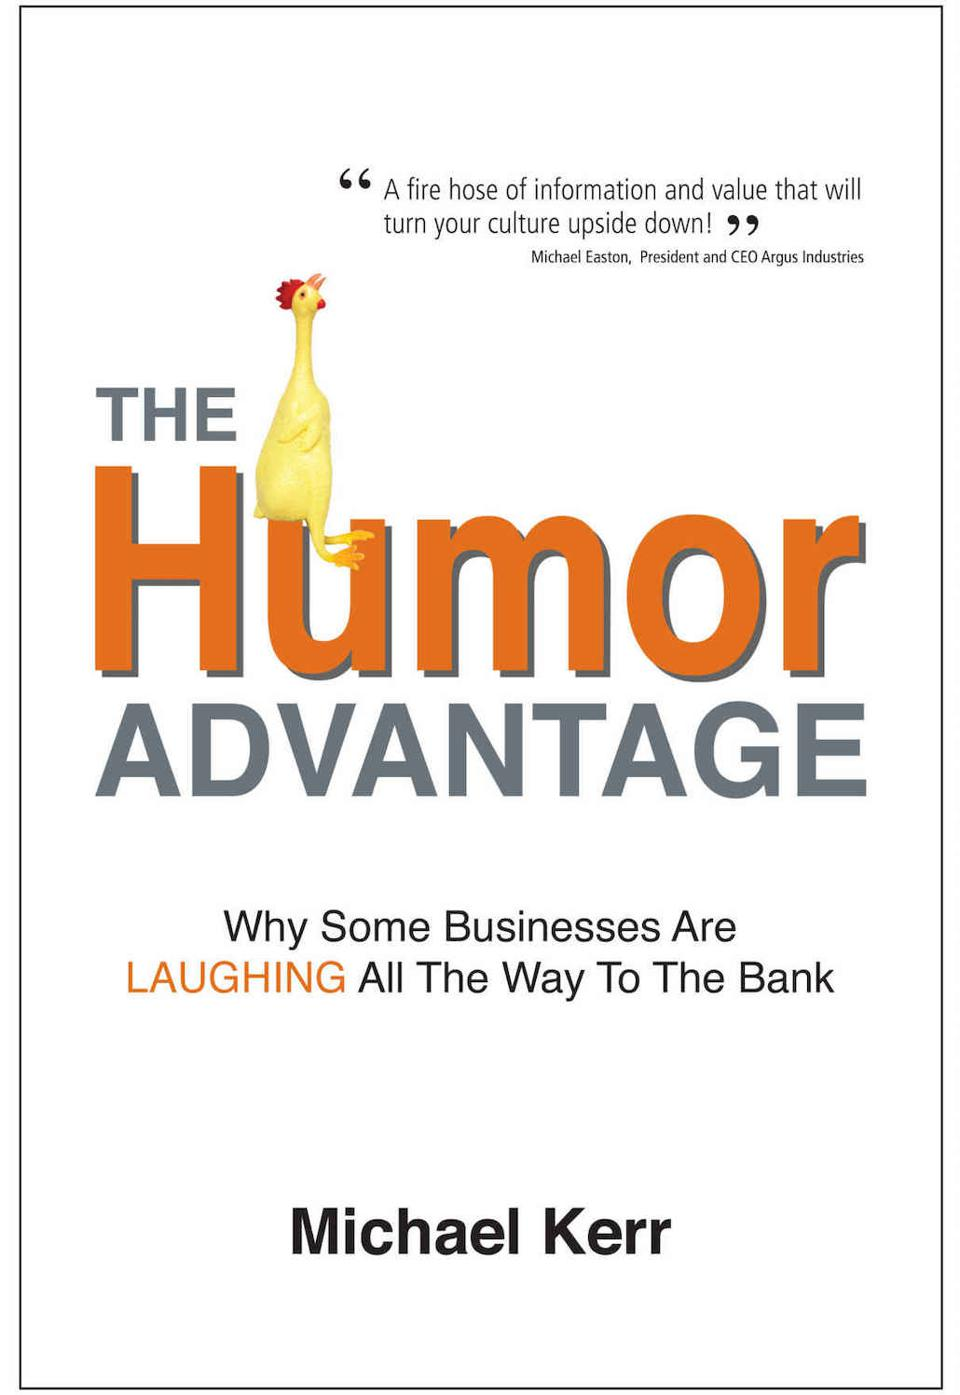 The Humor Advantage: Why Some Businesses Are Laughing All The Way To The Bank by Michael Kerr